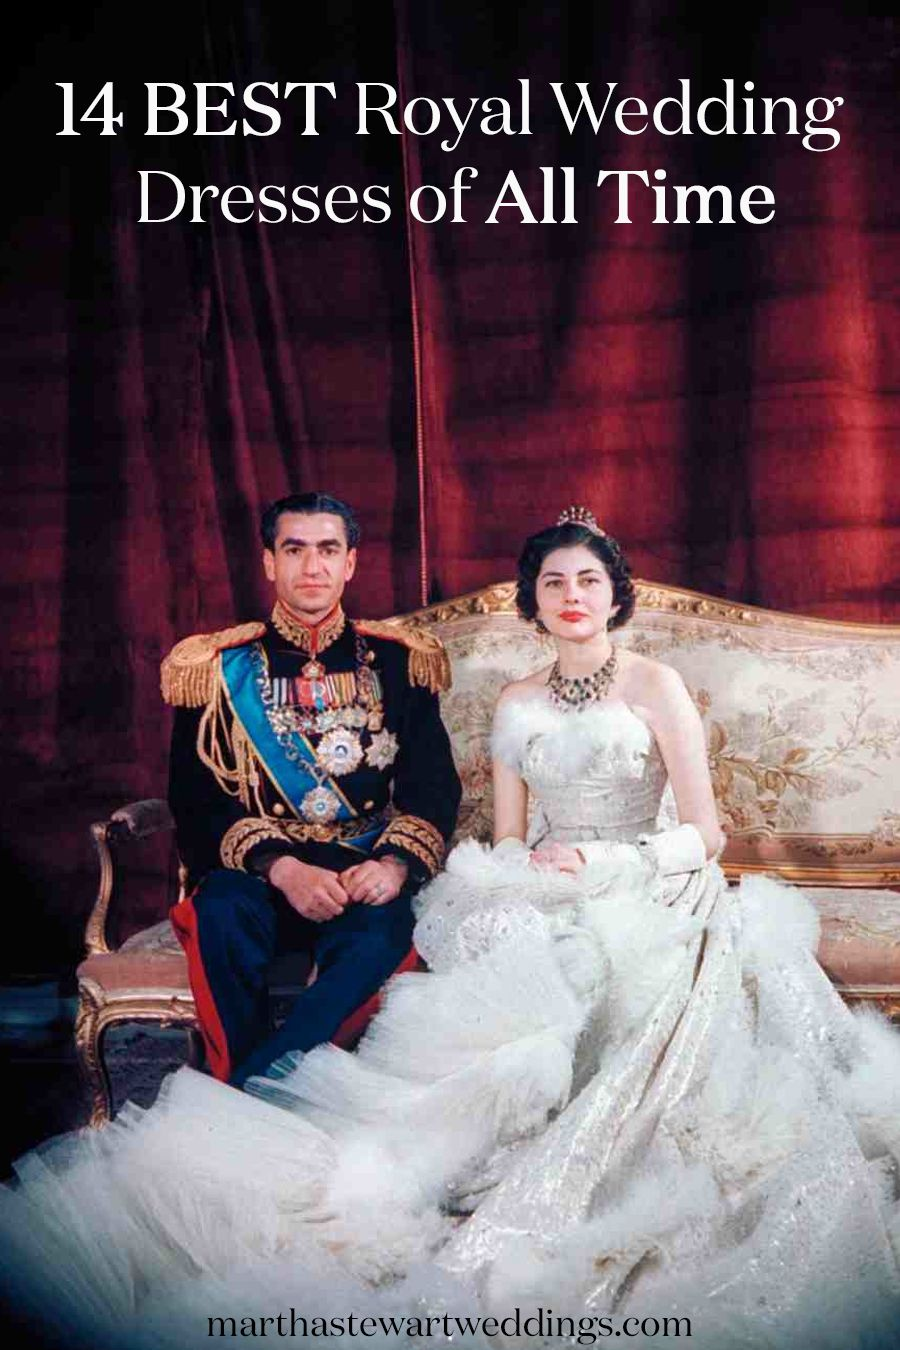 7643fd51463 The 17 Best Royal Wedding Dresses of All Time